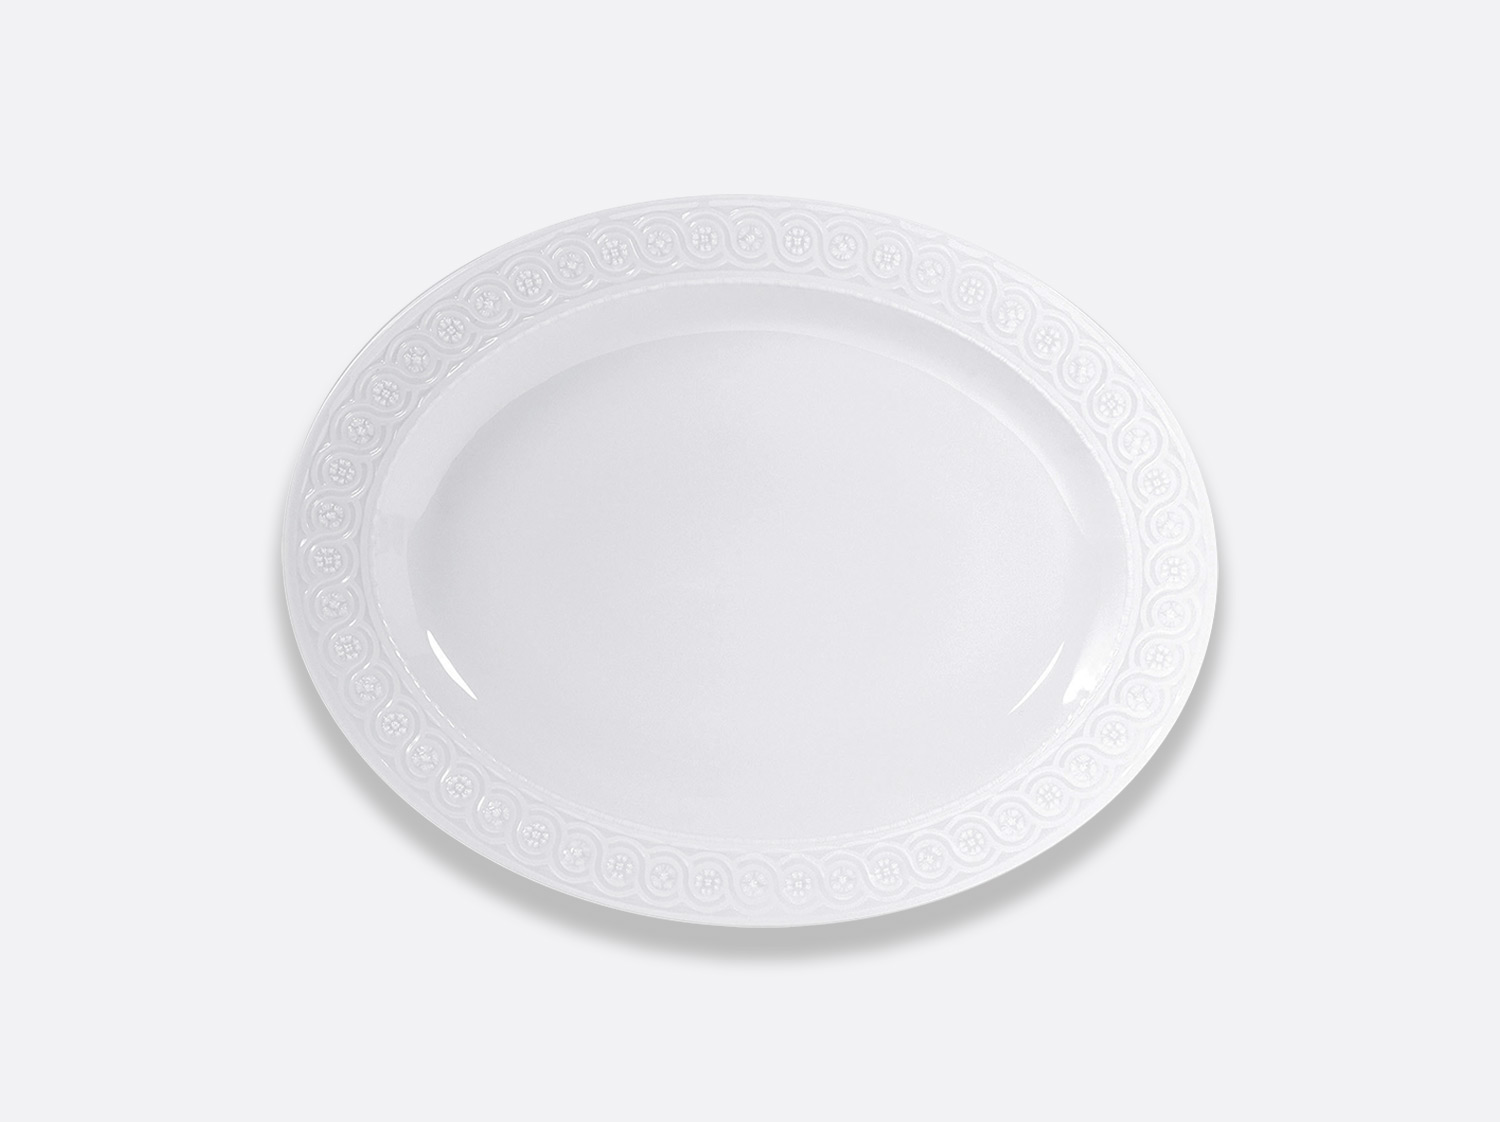 China Oval platter  38 cm of the collection Louvre | Bernardaud